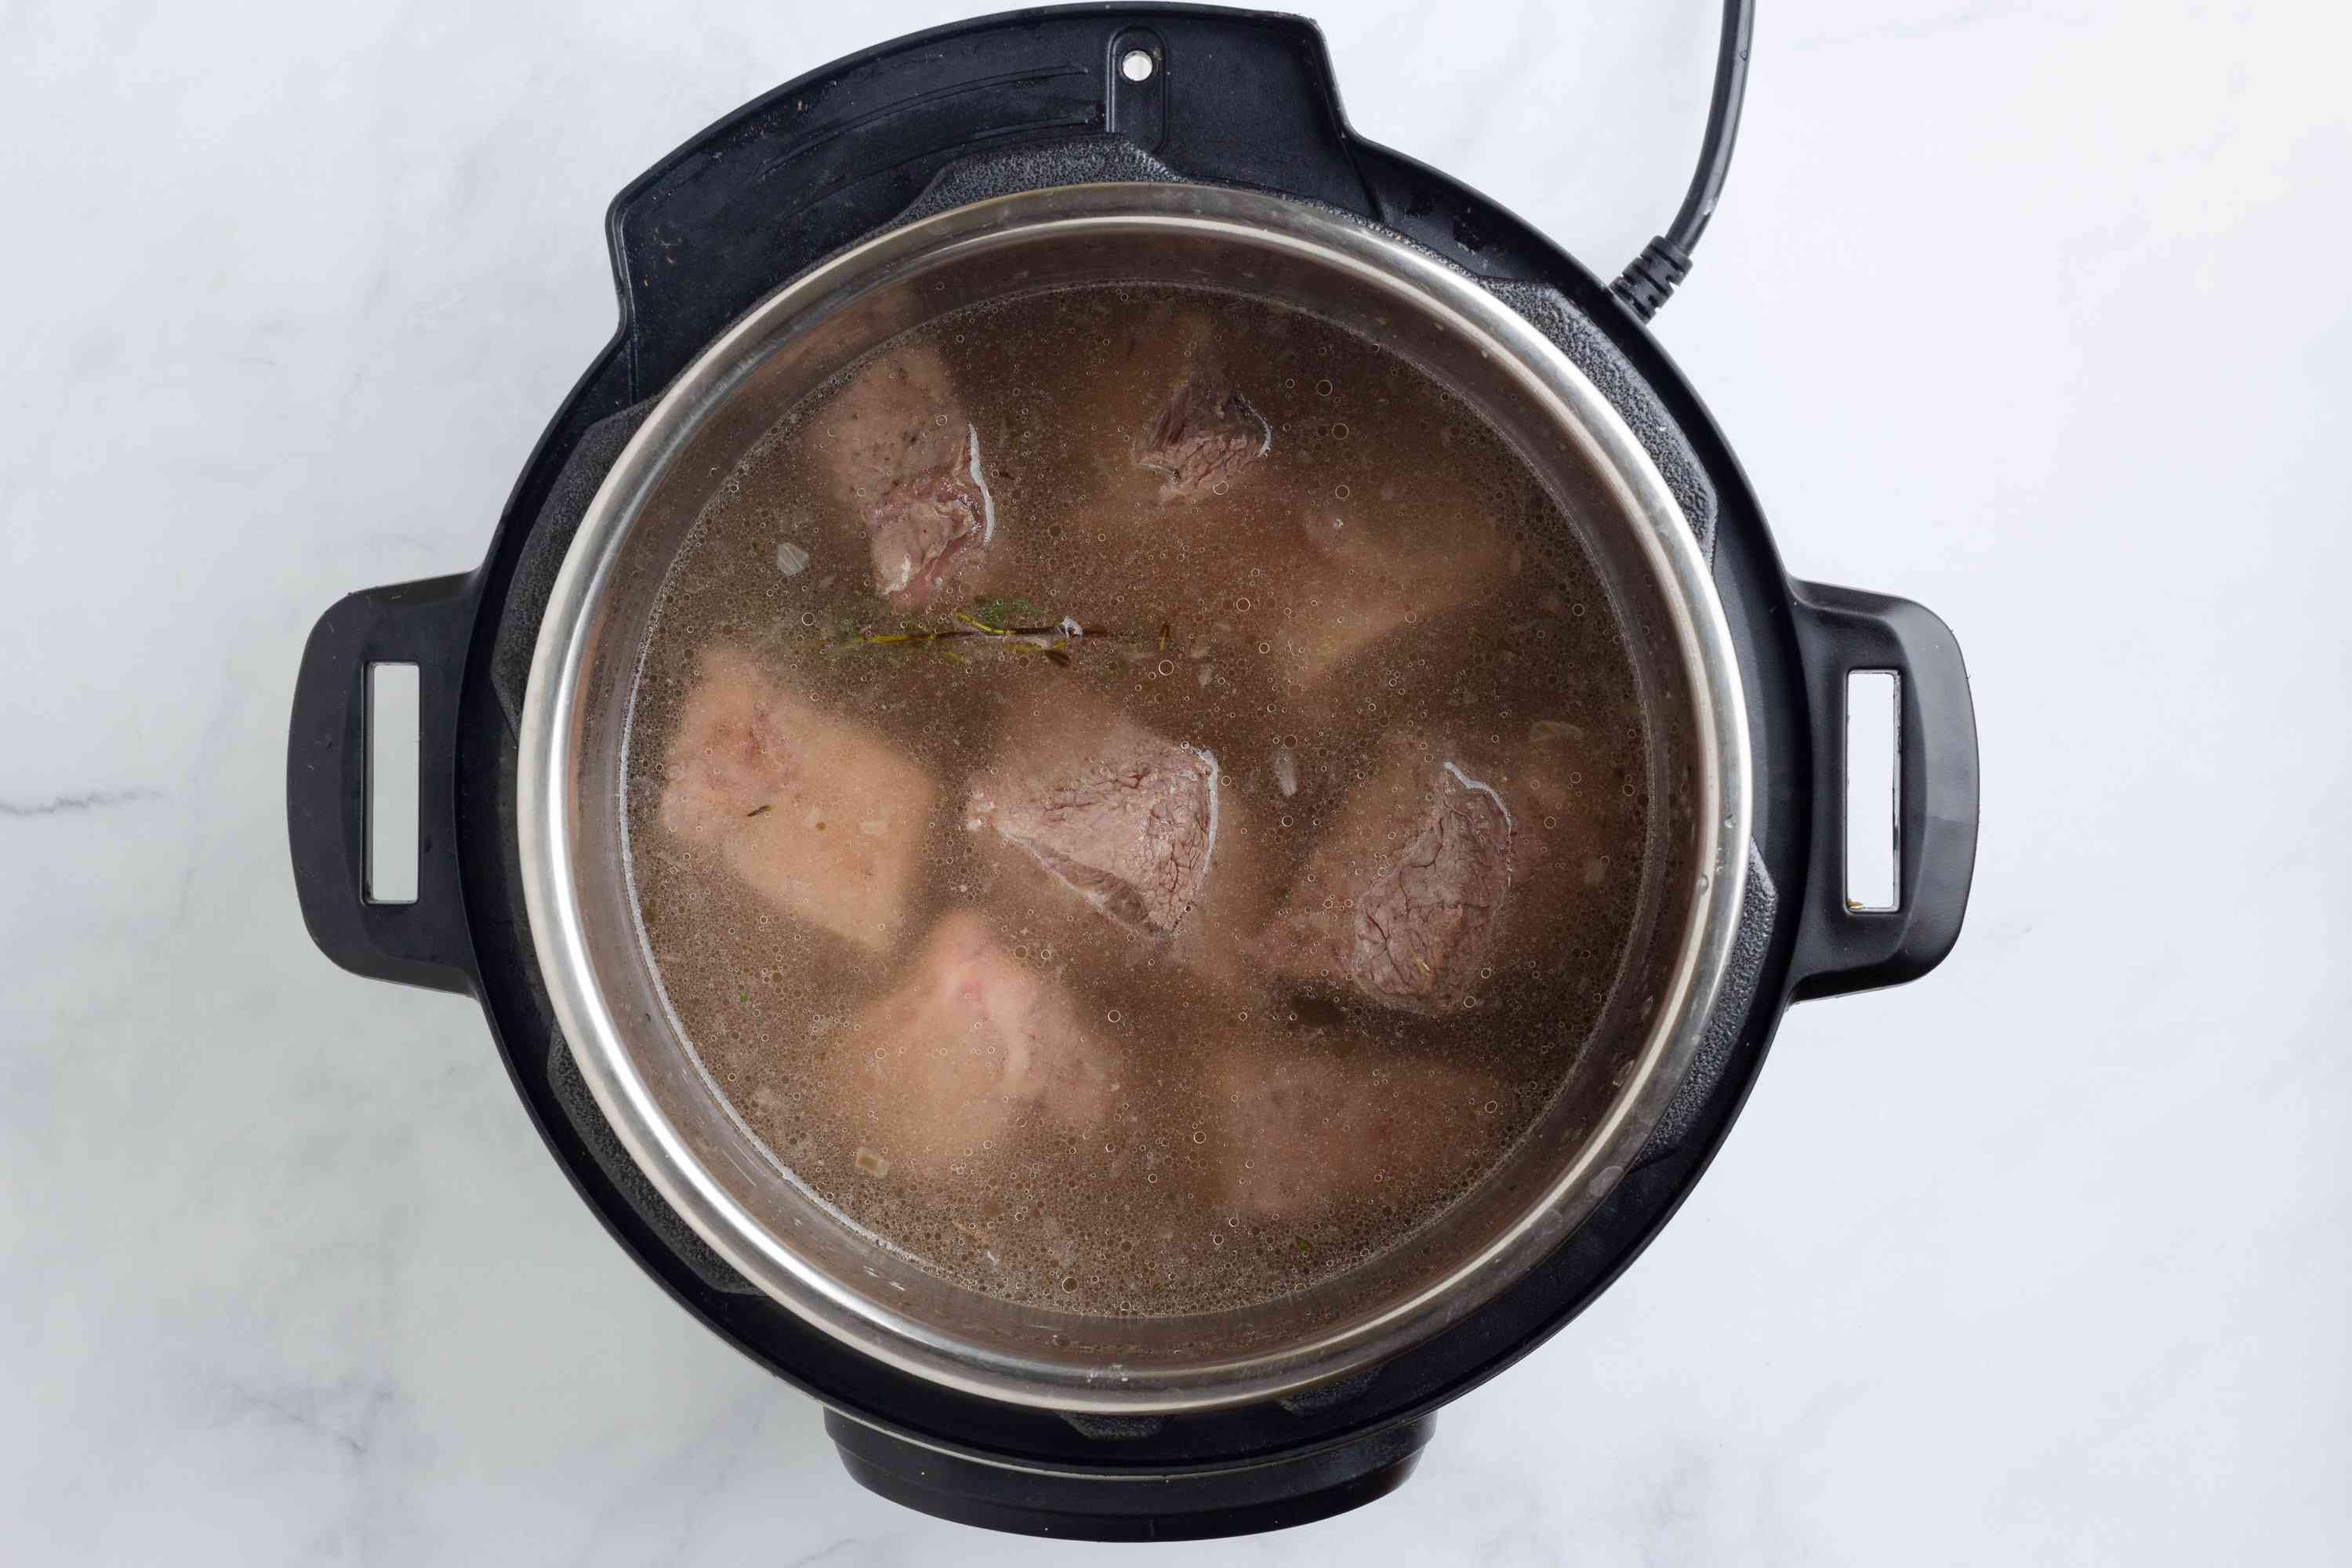 water added to the beef mixture in the pressure cooker